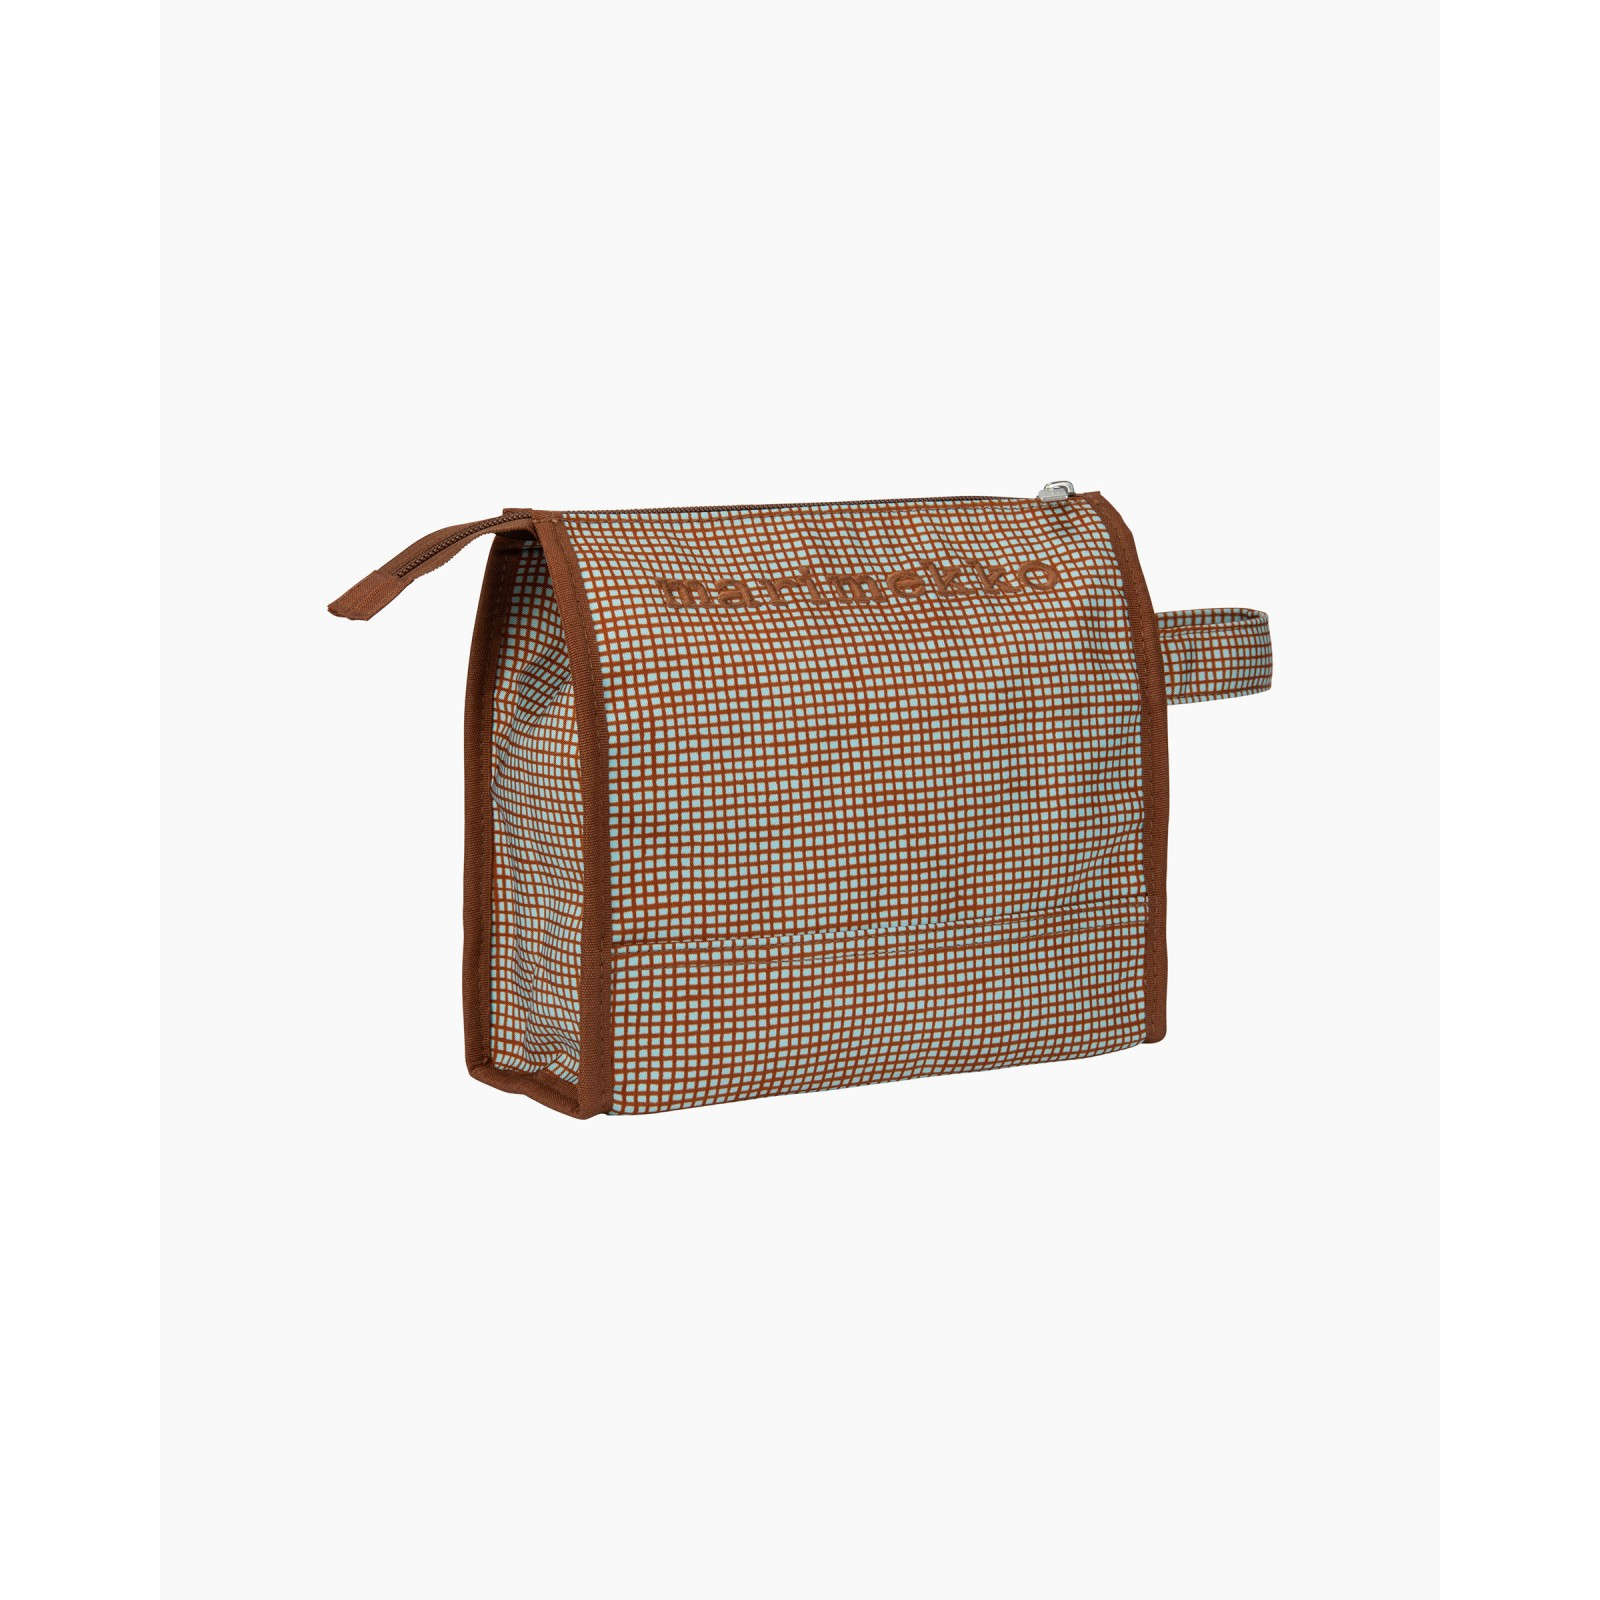 Marimekko Nuuka Verkko Cosmetic Bag Light Blue/Chestnut